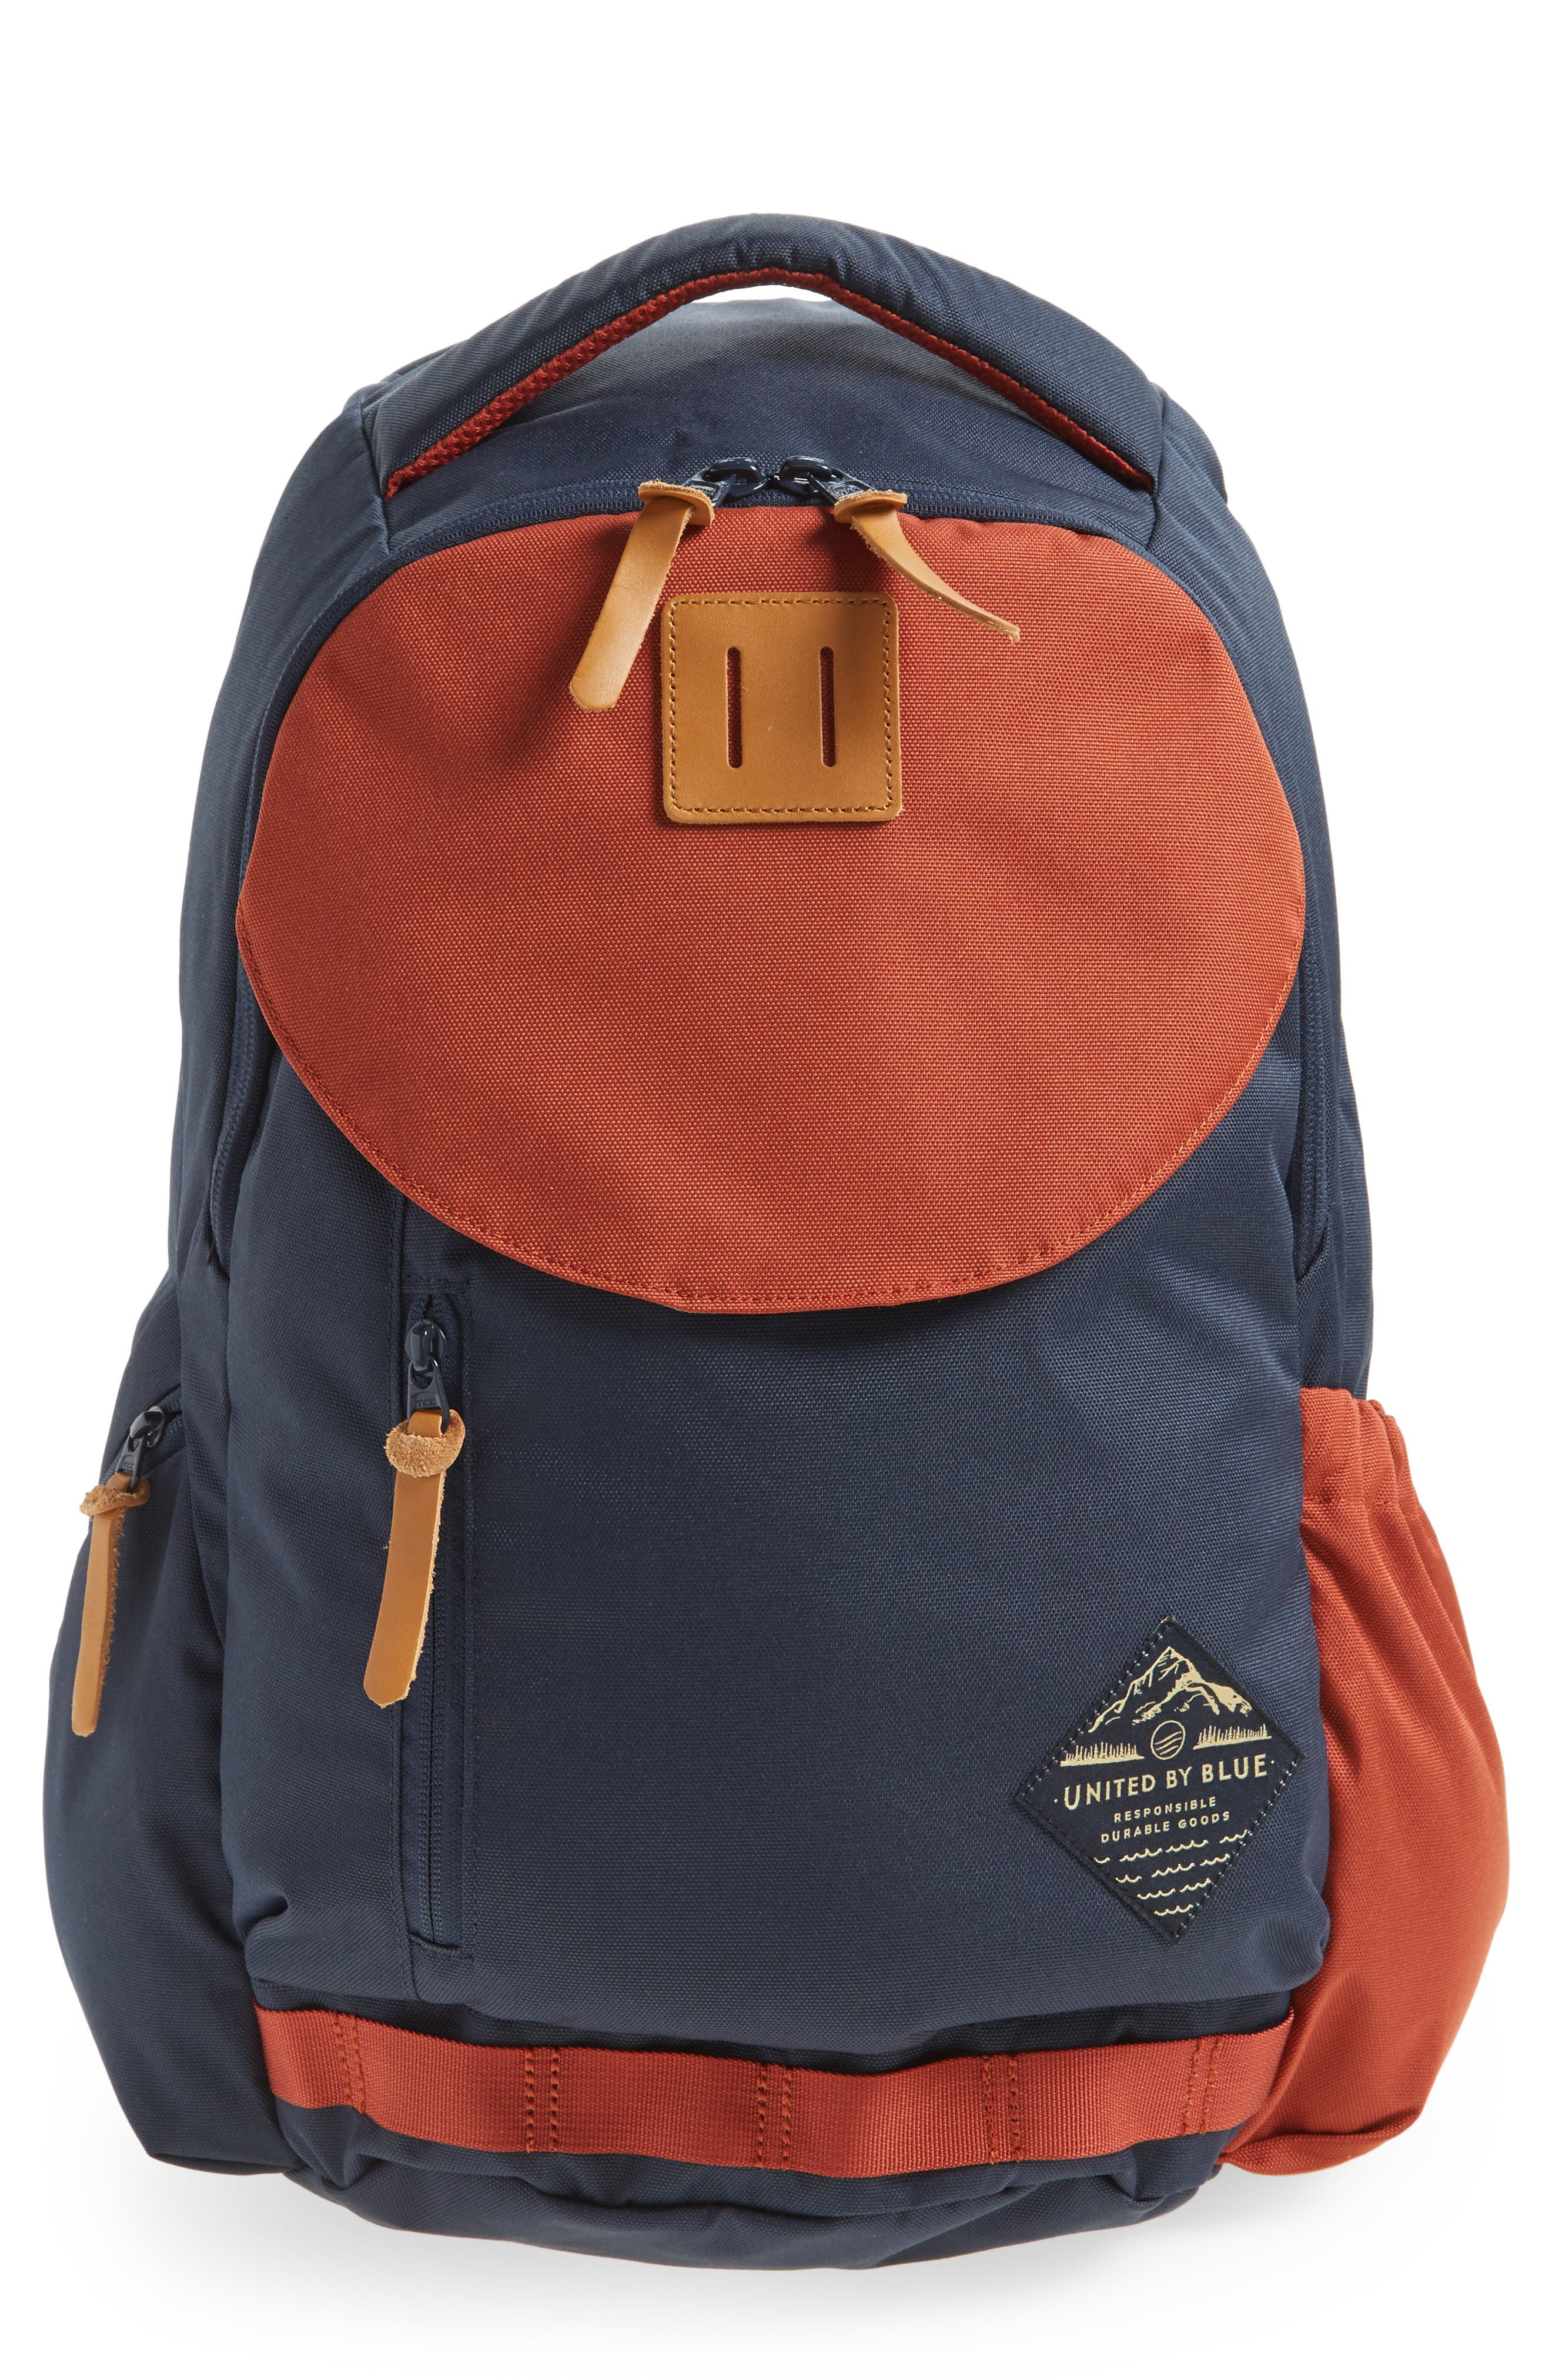 Rift Backpack,                             Main thumbnail 1, color,                             Navy/ Rust